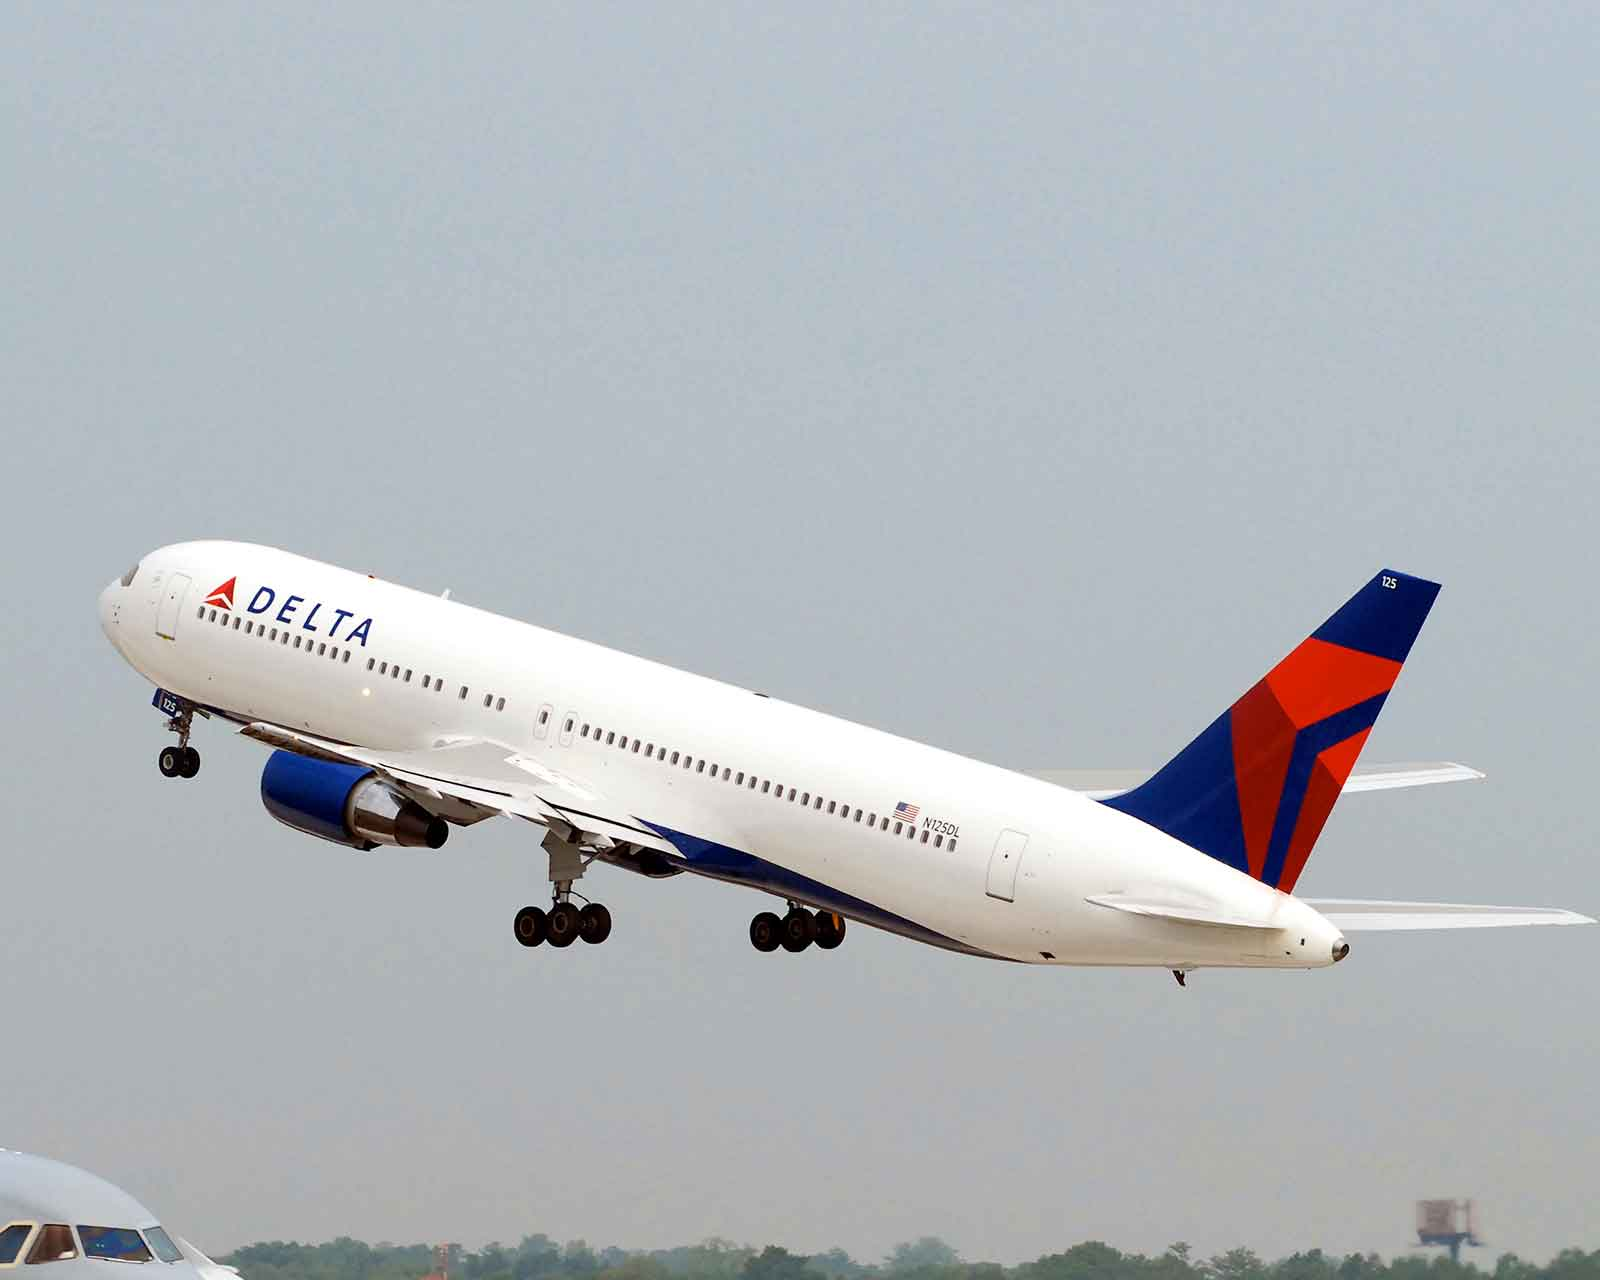 Delta adds two trans Atlantic Flights from Midwest hubs to Rome and Munich using Boieng 767 aircraft